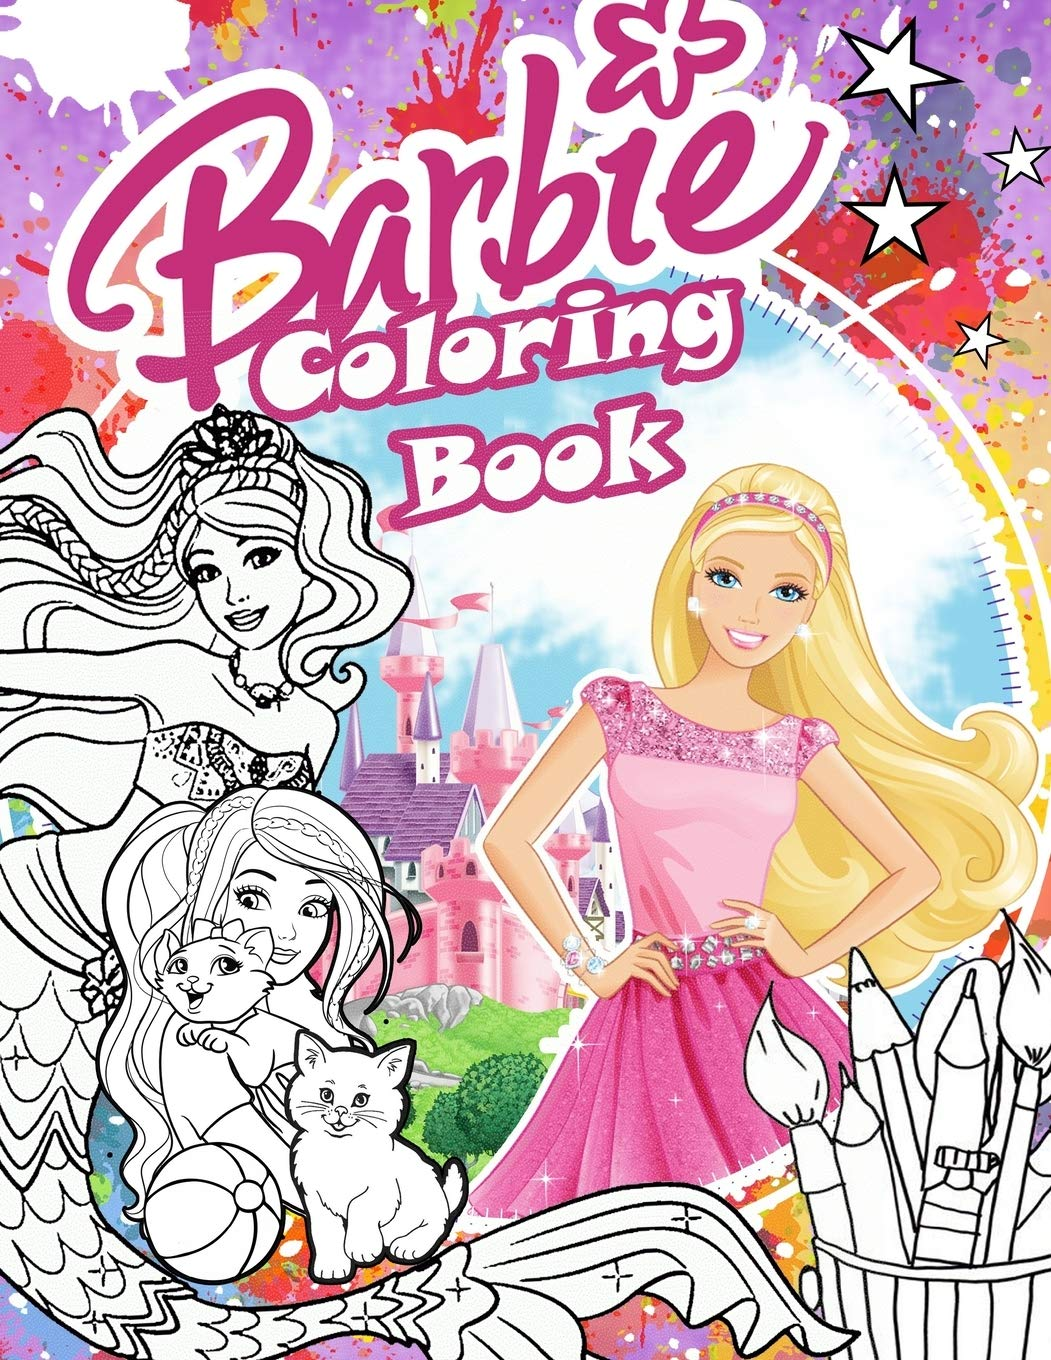 - Barbie Coloring Book: Barbie Coloring Book For Girls 4-8 With